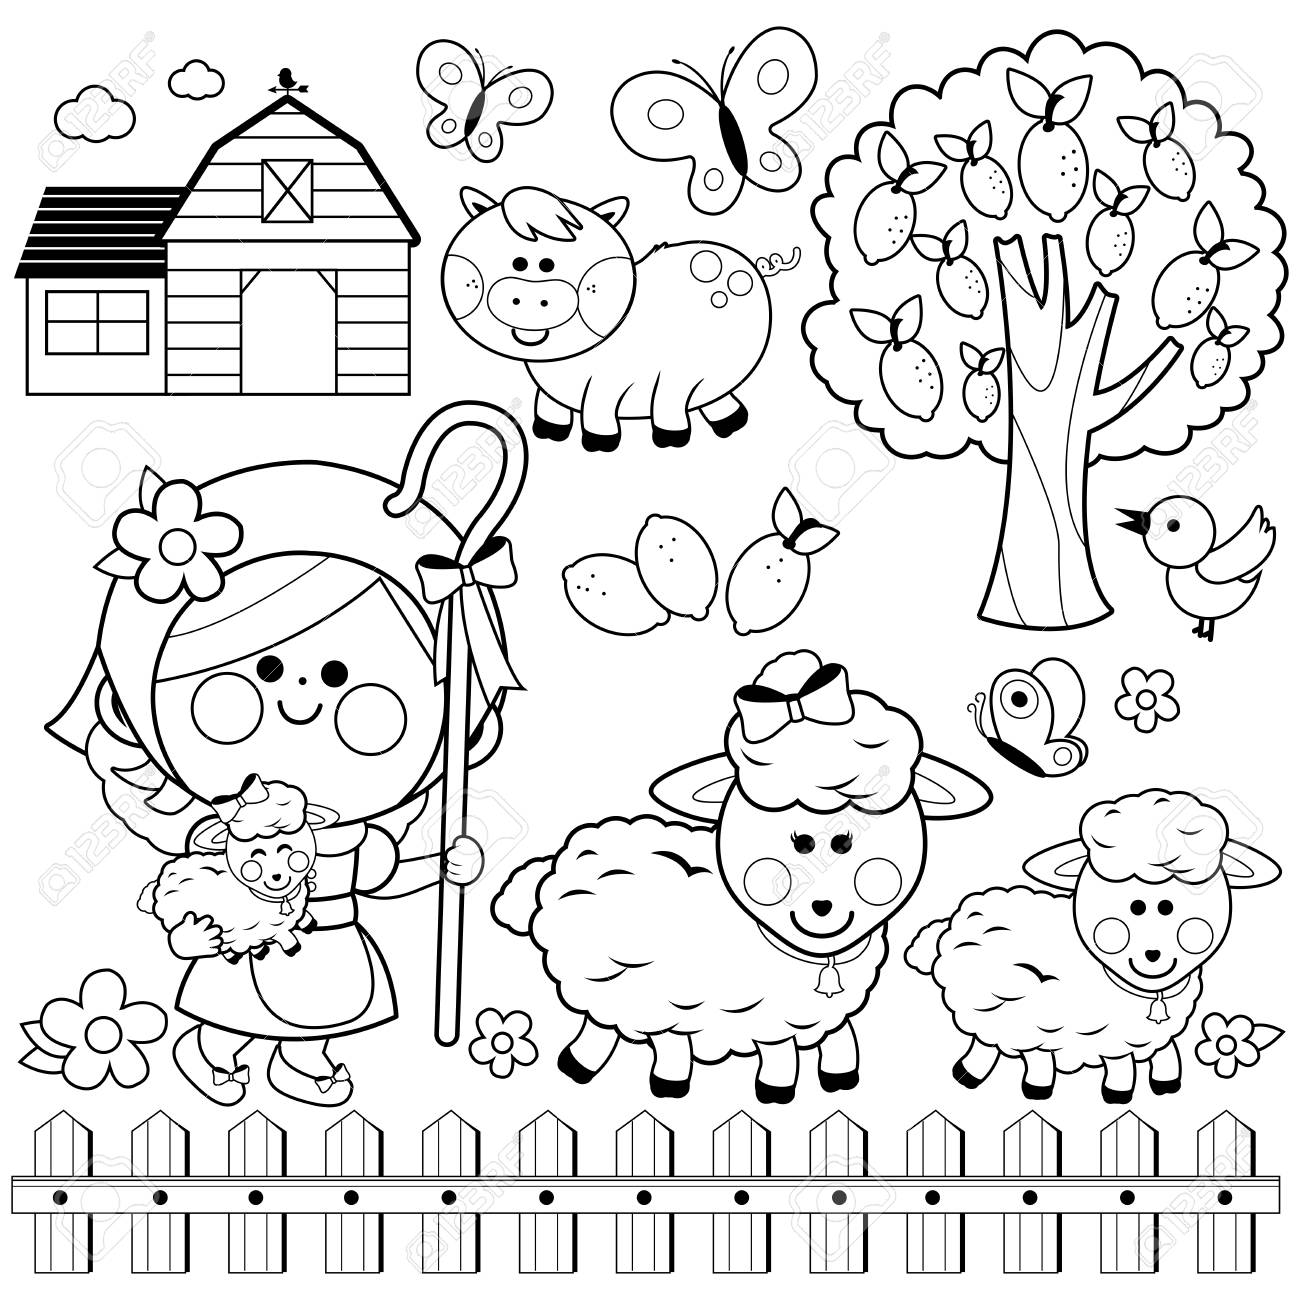 Coloring Page Outline Of Cartoon Chicken Or Hen With Chicks. Farm ...   1300x1300